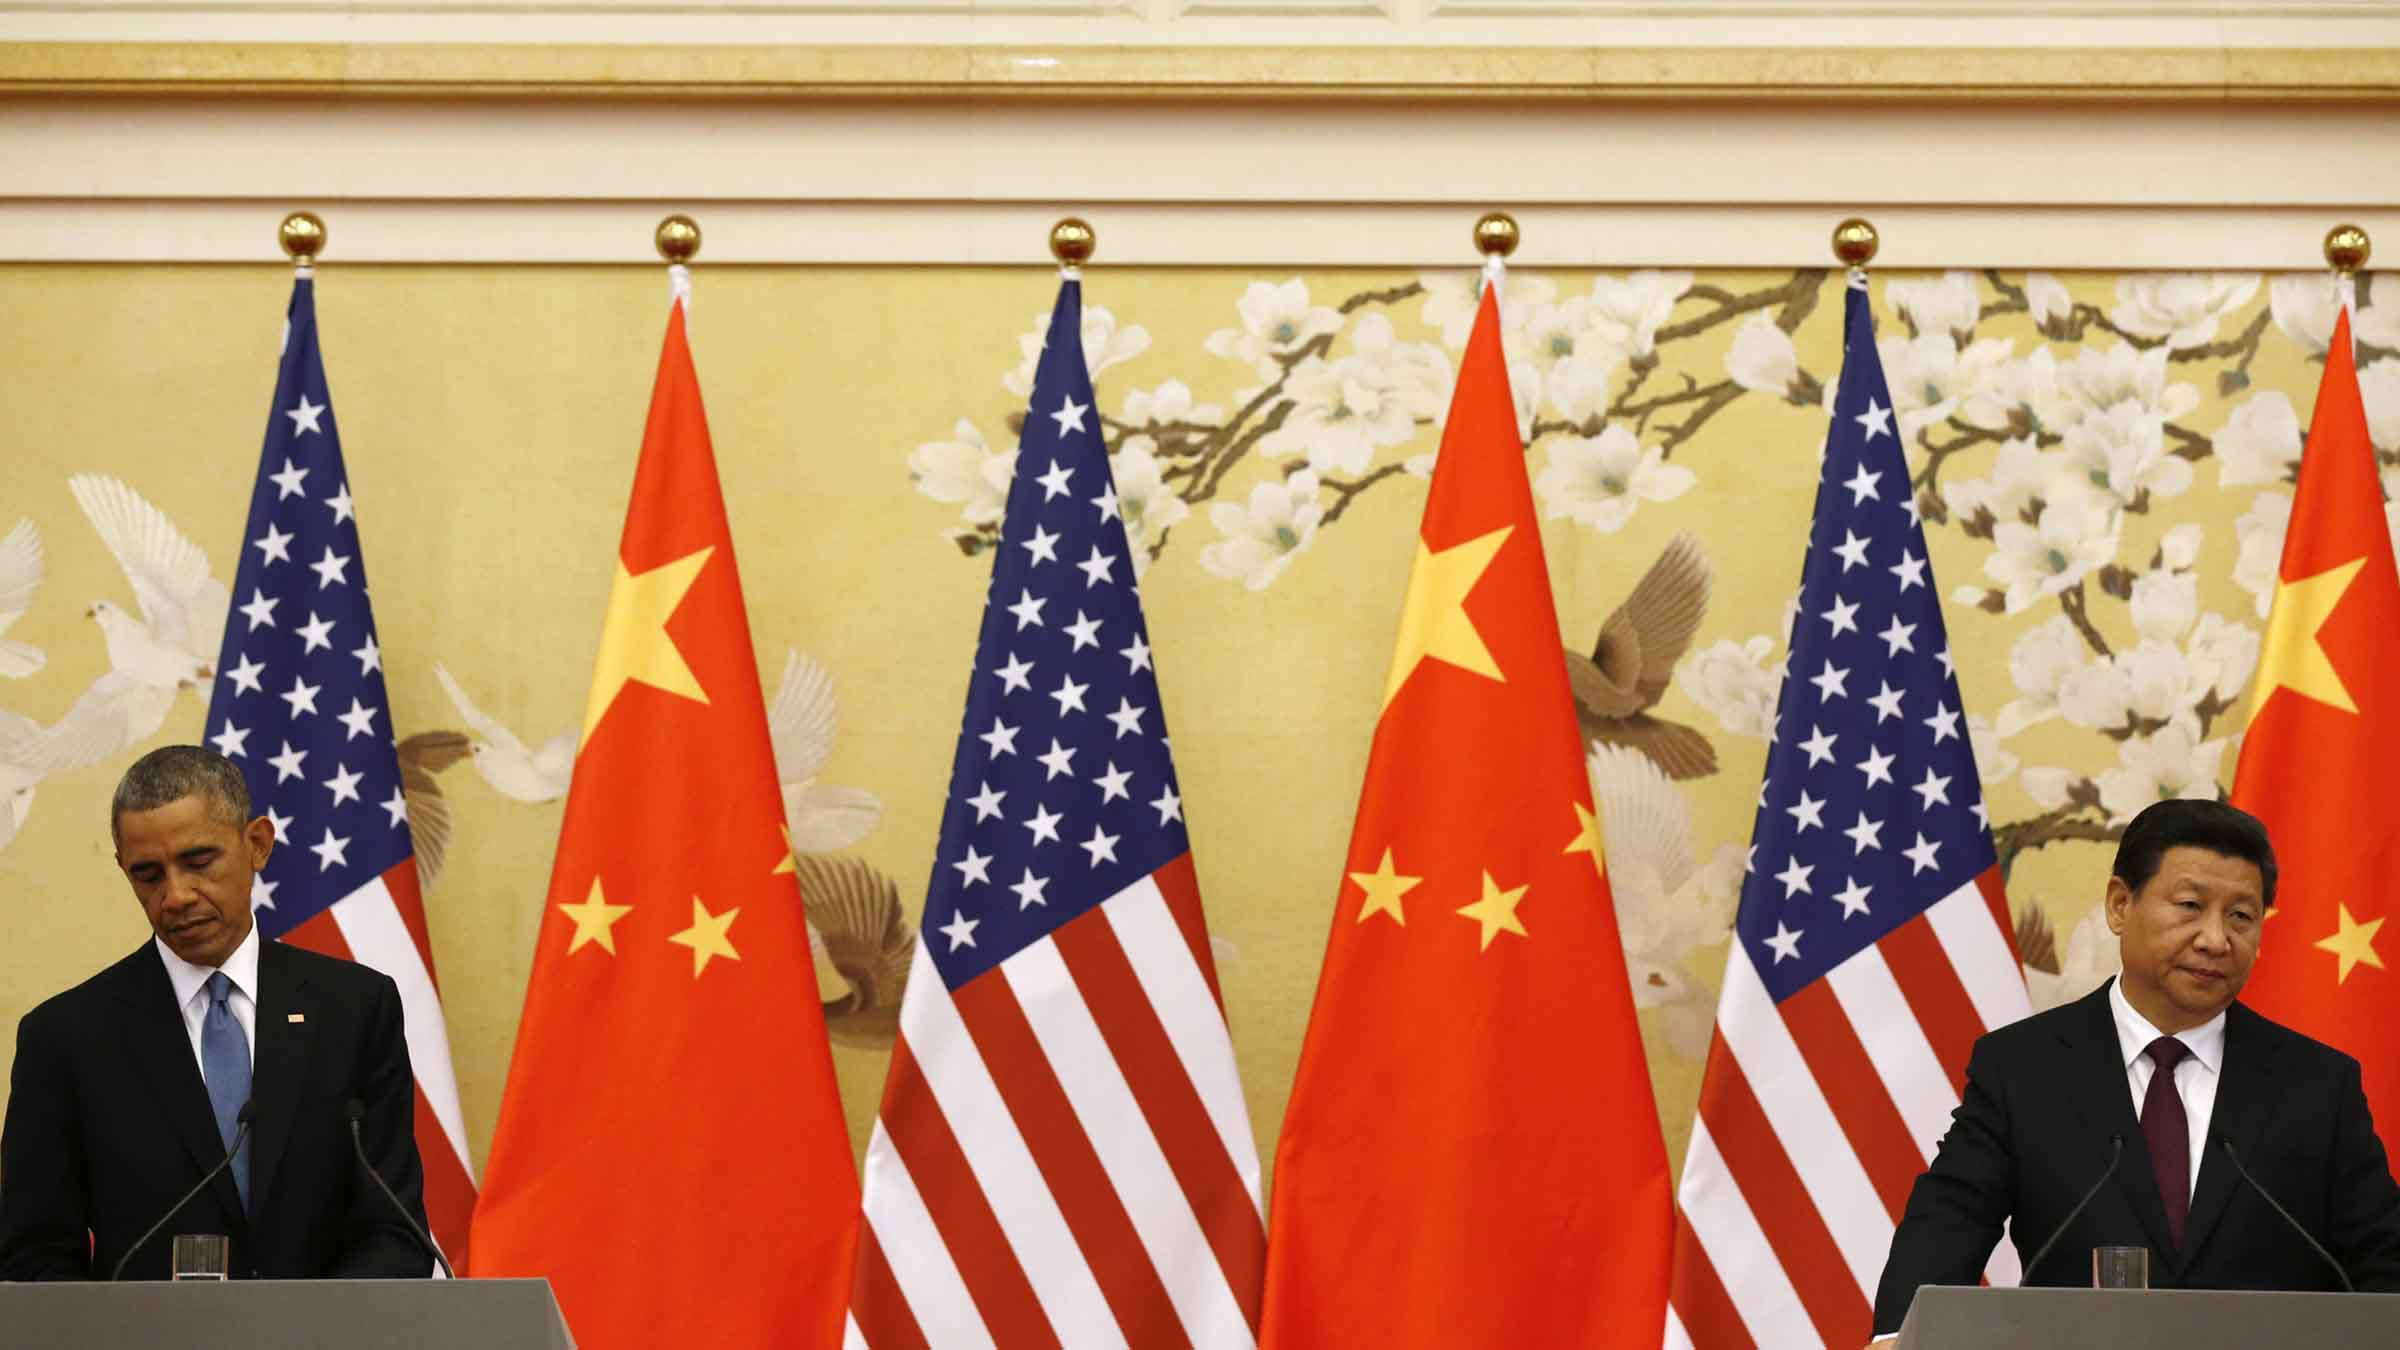 Obama and Xi hold a news conference the Great Hall of the People in Beijing